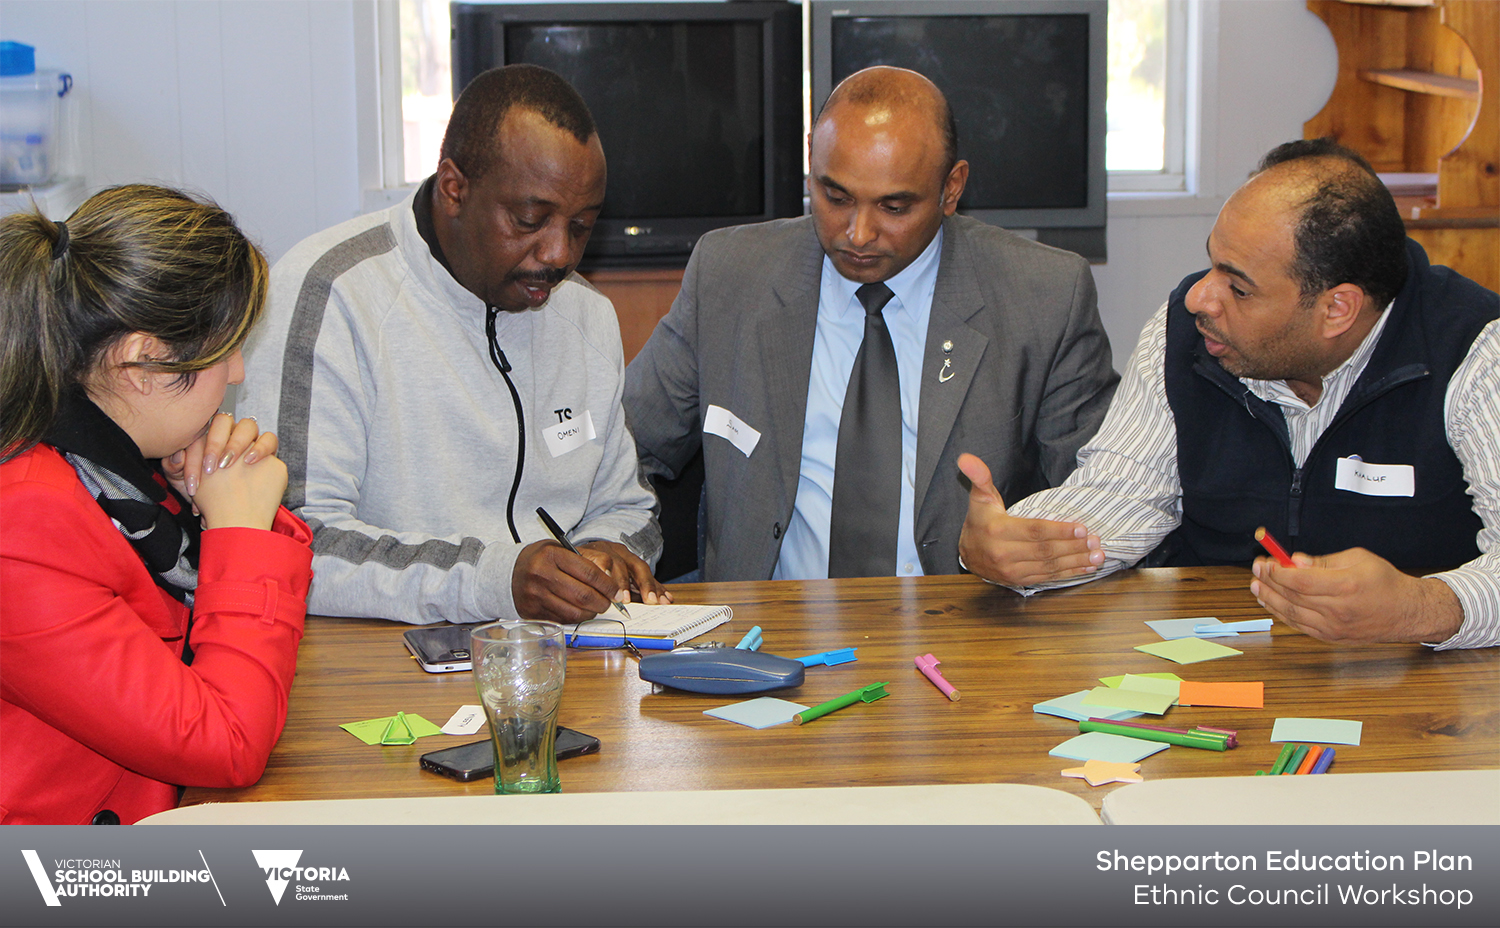 4 people working at a table for Ethnic Council workshop